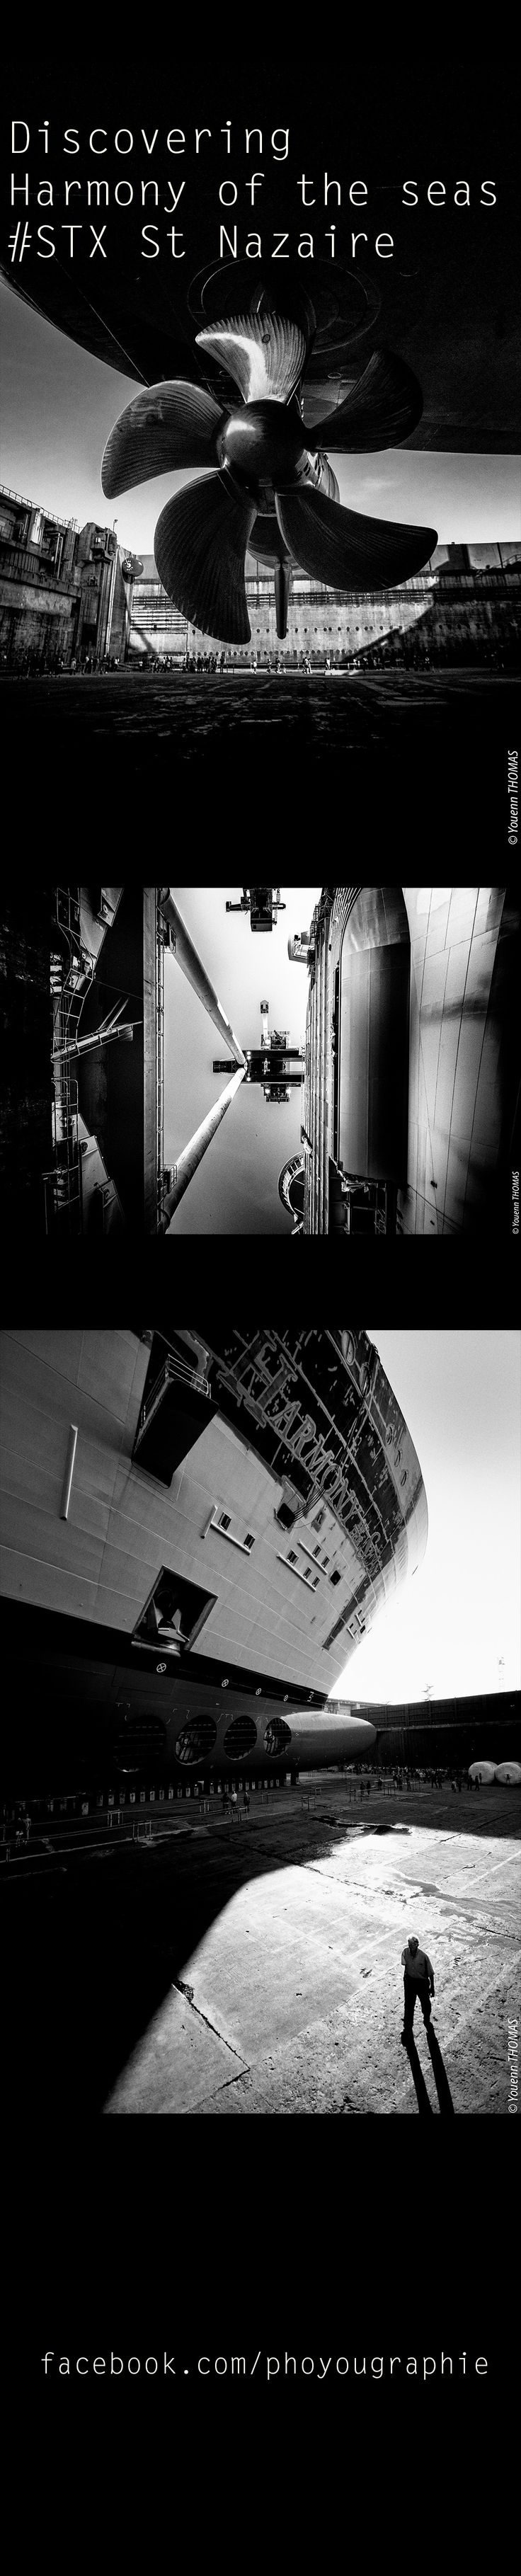 Harmony of the seas, the bigger cruiser liner of the world, under construction in the Saint Nazaire STX shipyard.